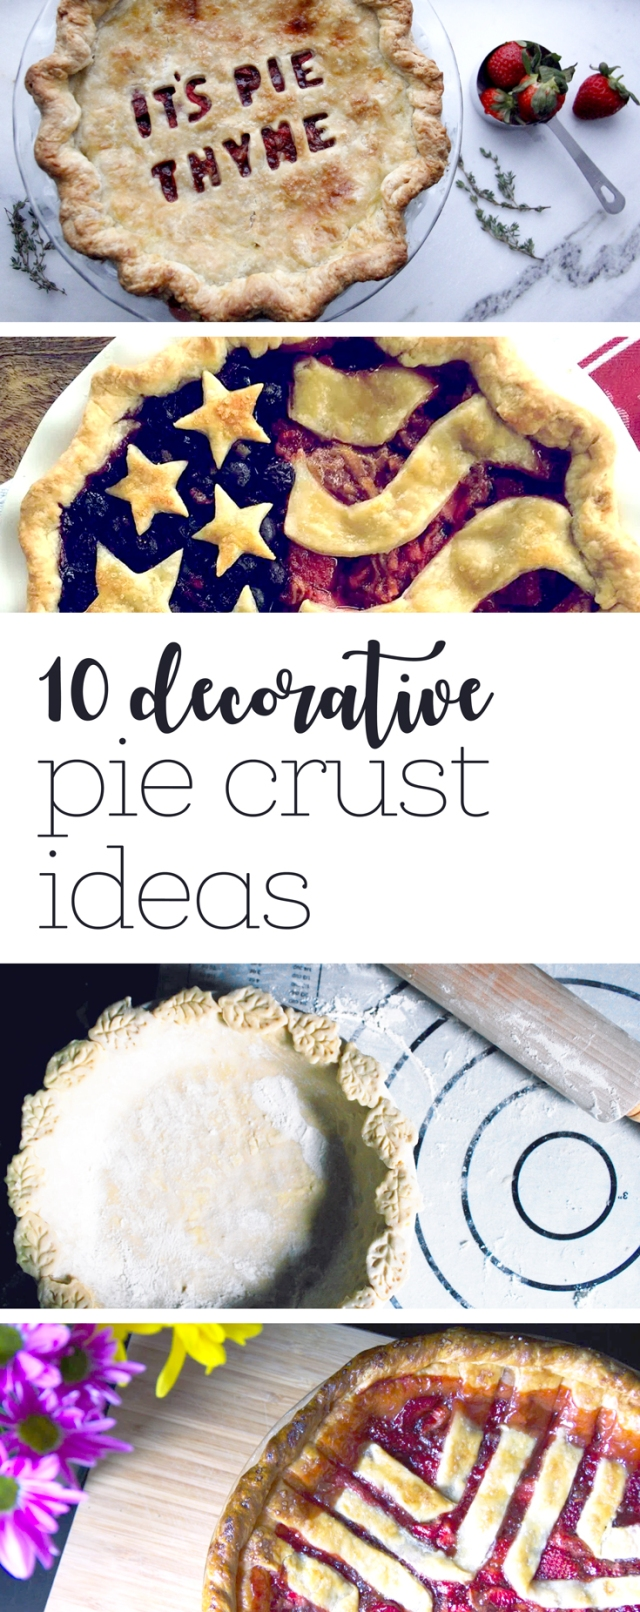 Pie-Crust-Ideas